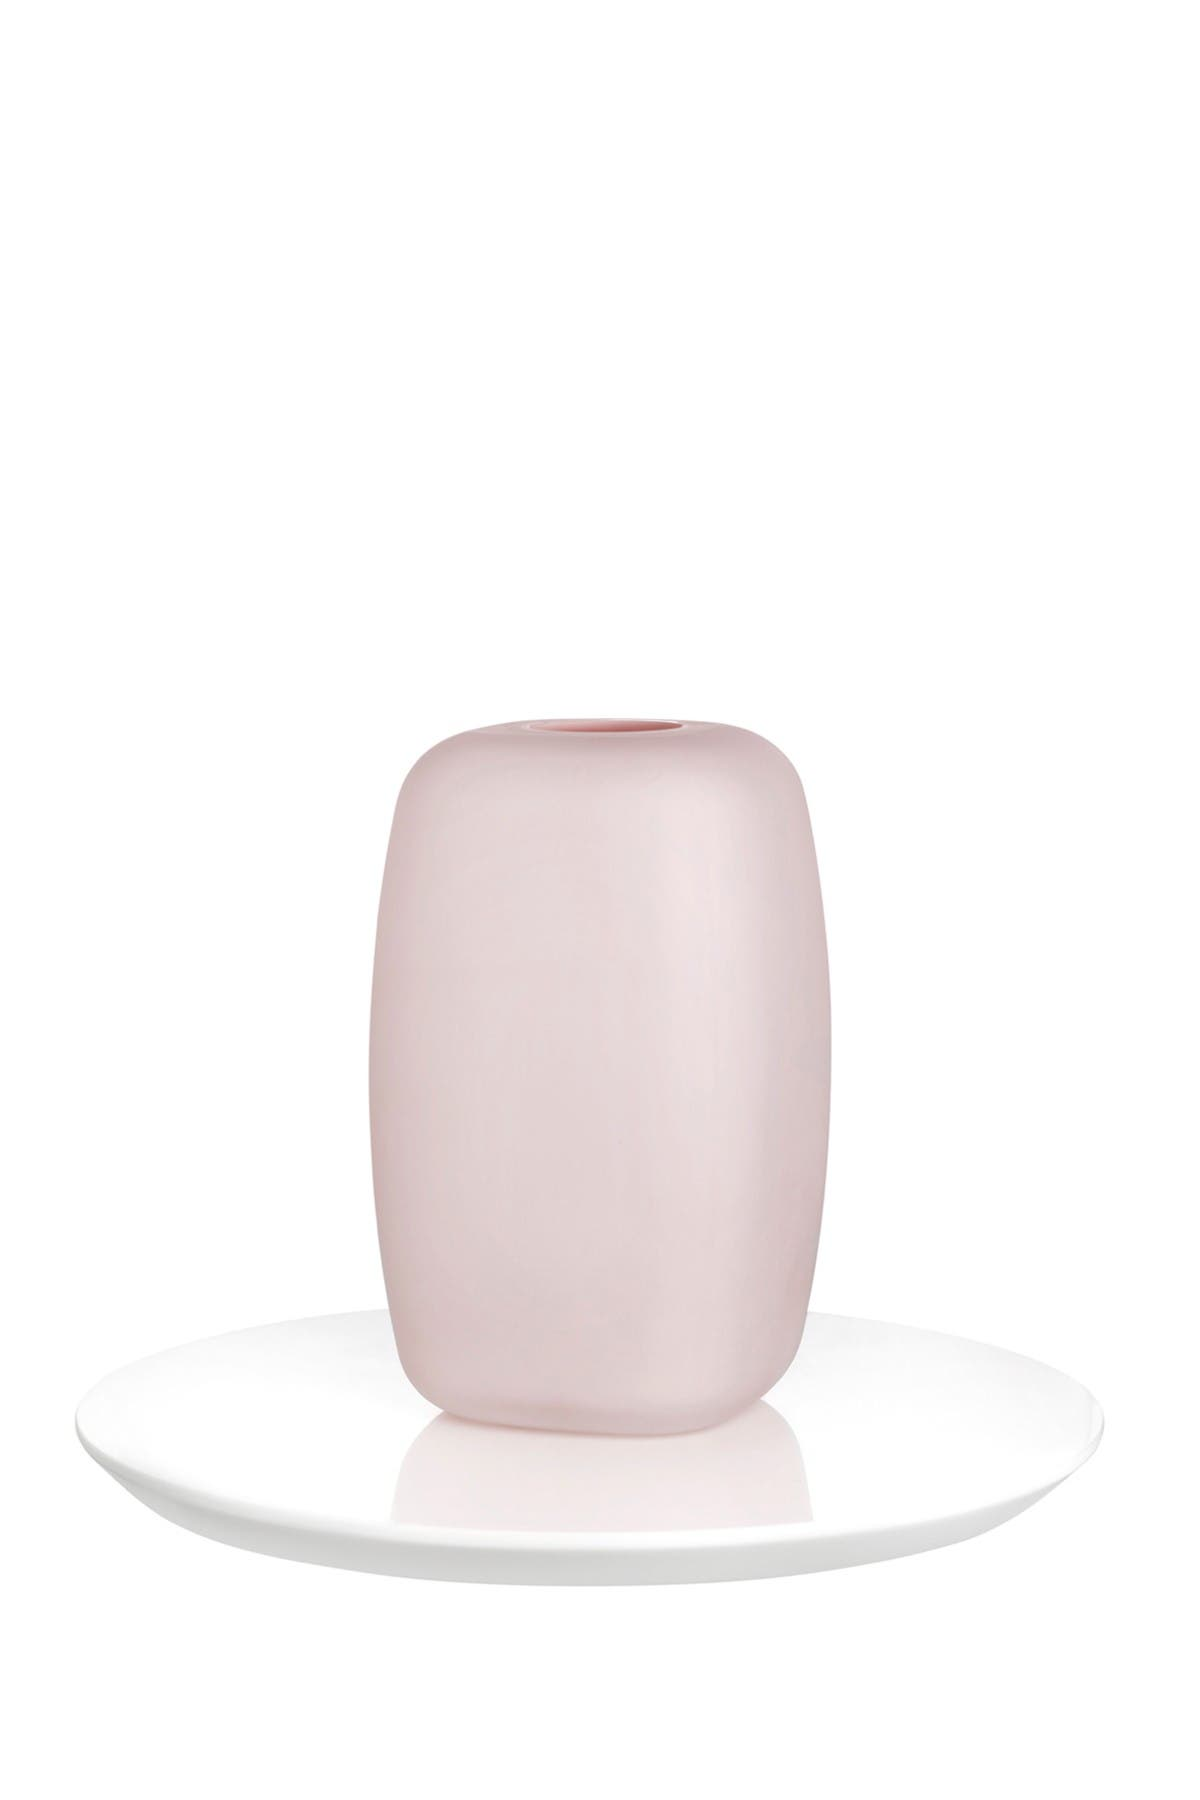 Image of Nude Glass Sweets Vase - Small - Opal Pink with Glossy White Base